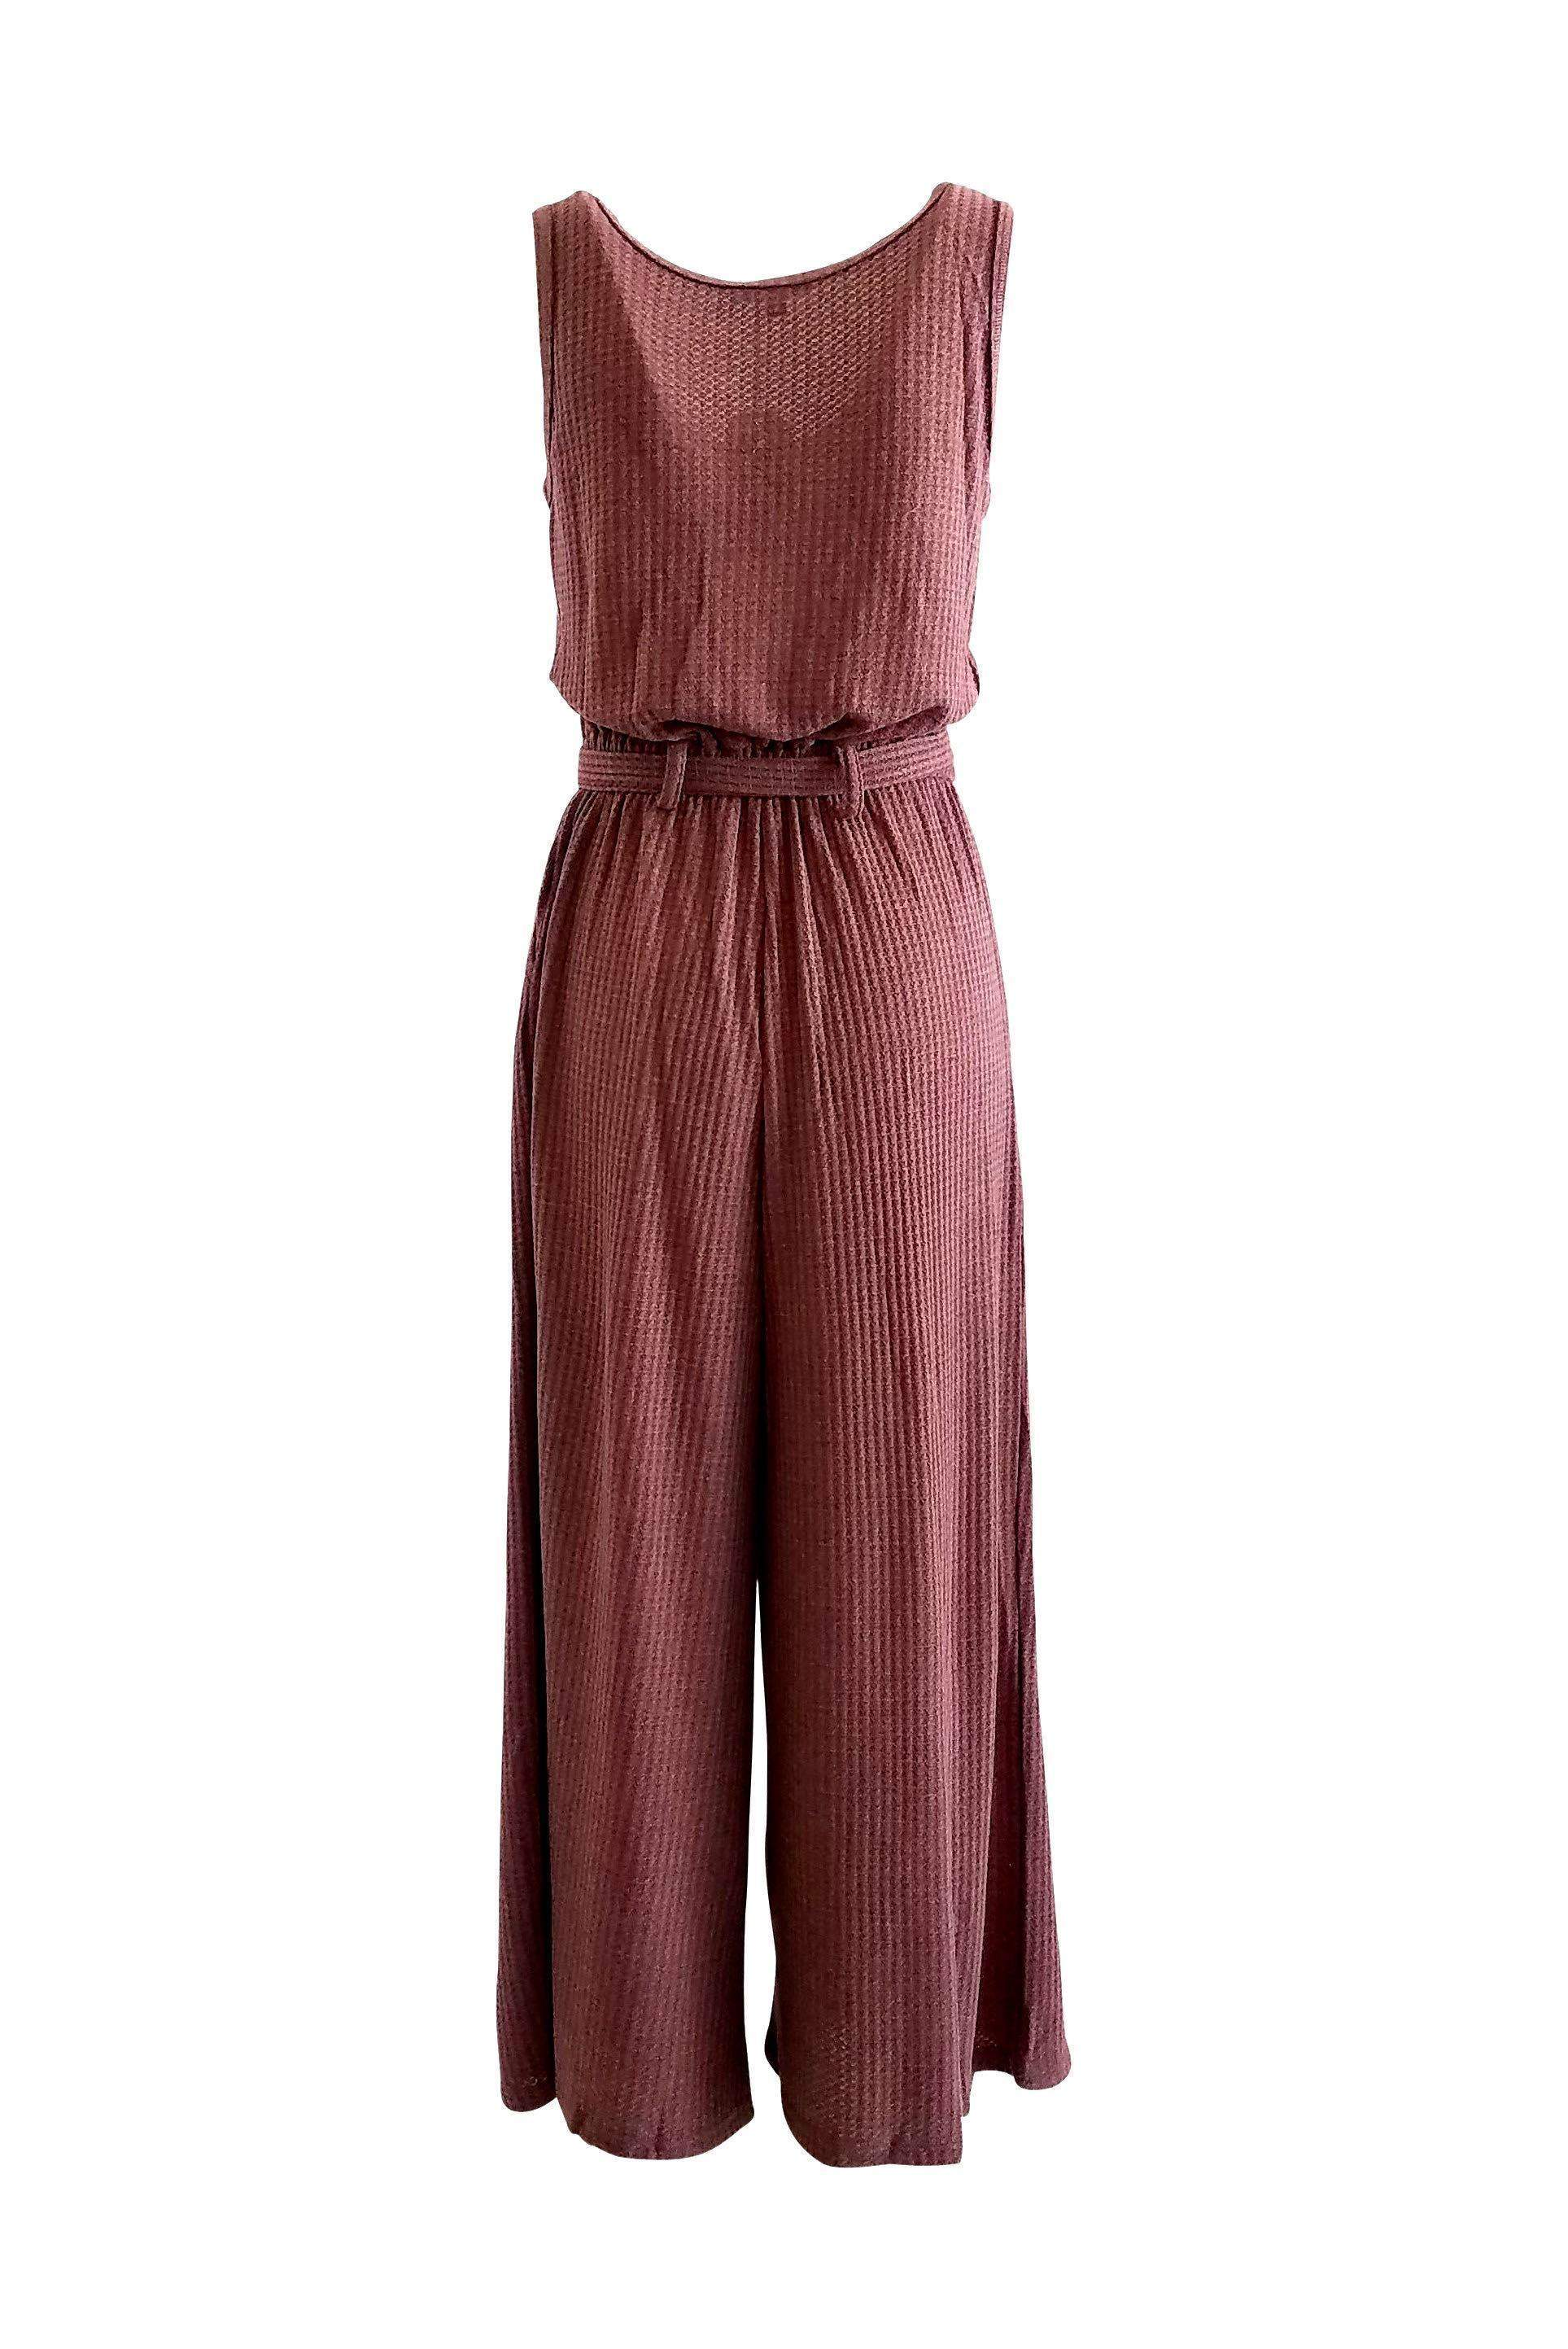 Chill Vibes Knit Jumpsuit in Wine - Jumpsuit - Very J - BKLYN Bodies